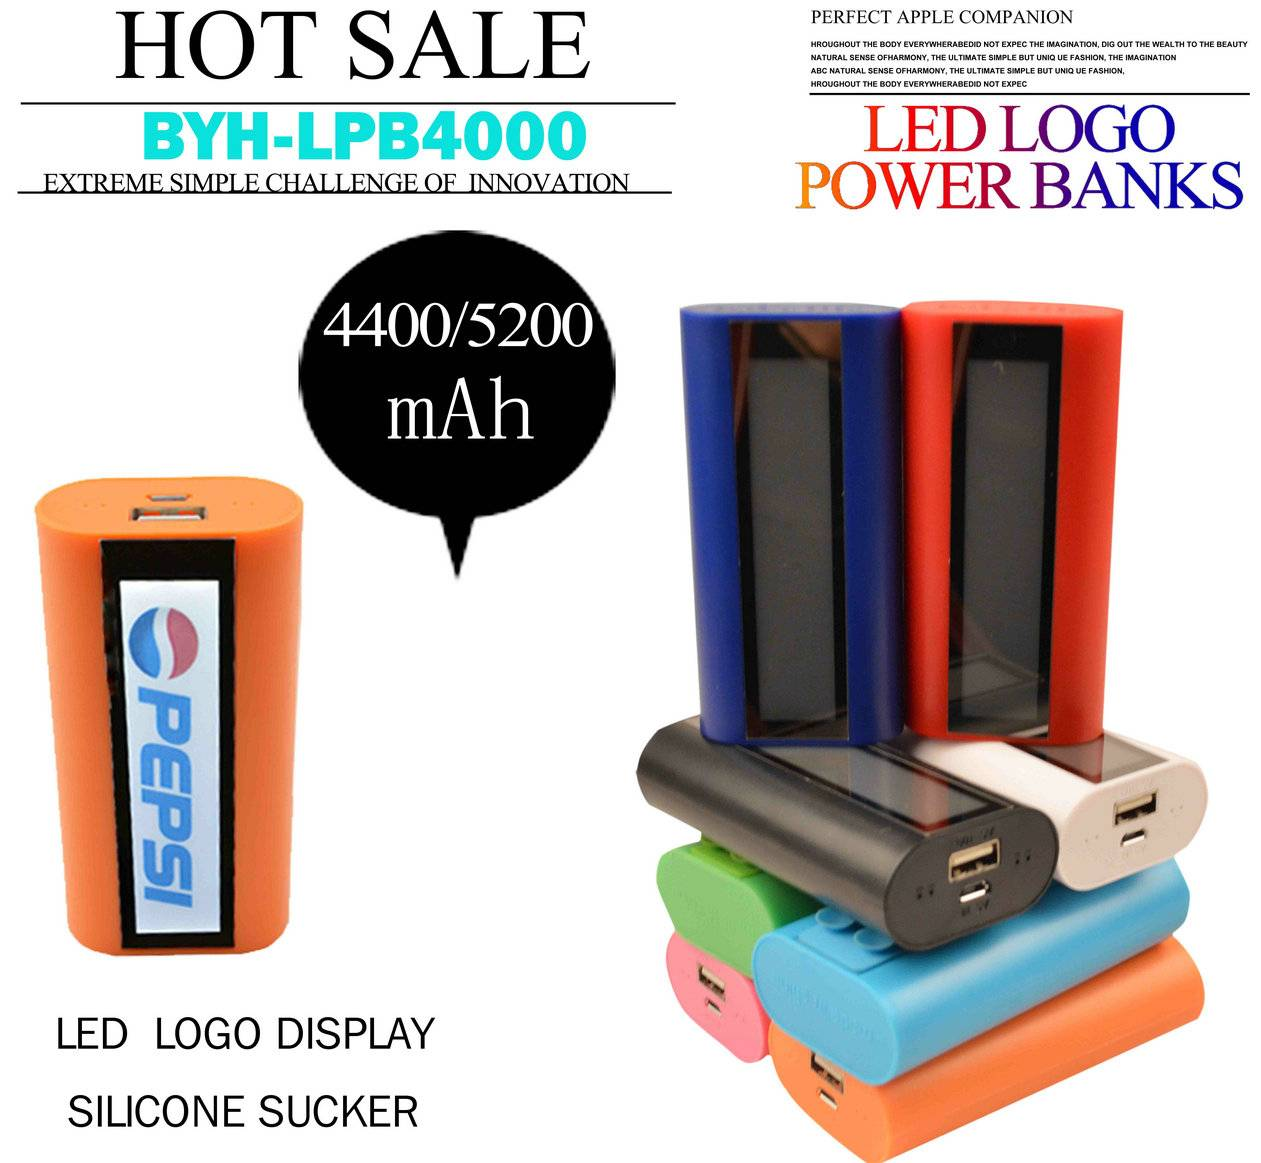 portable charger,poratble charger,power bank,